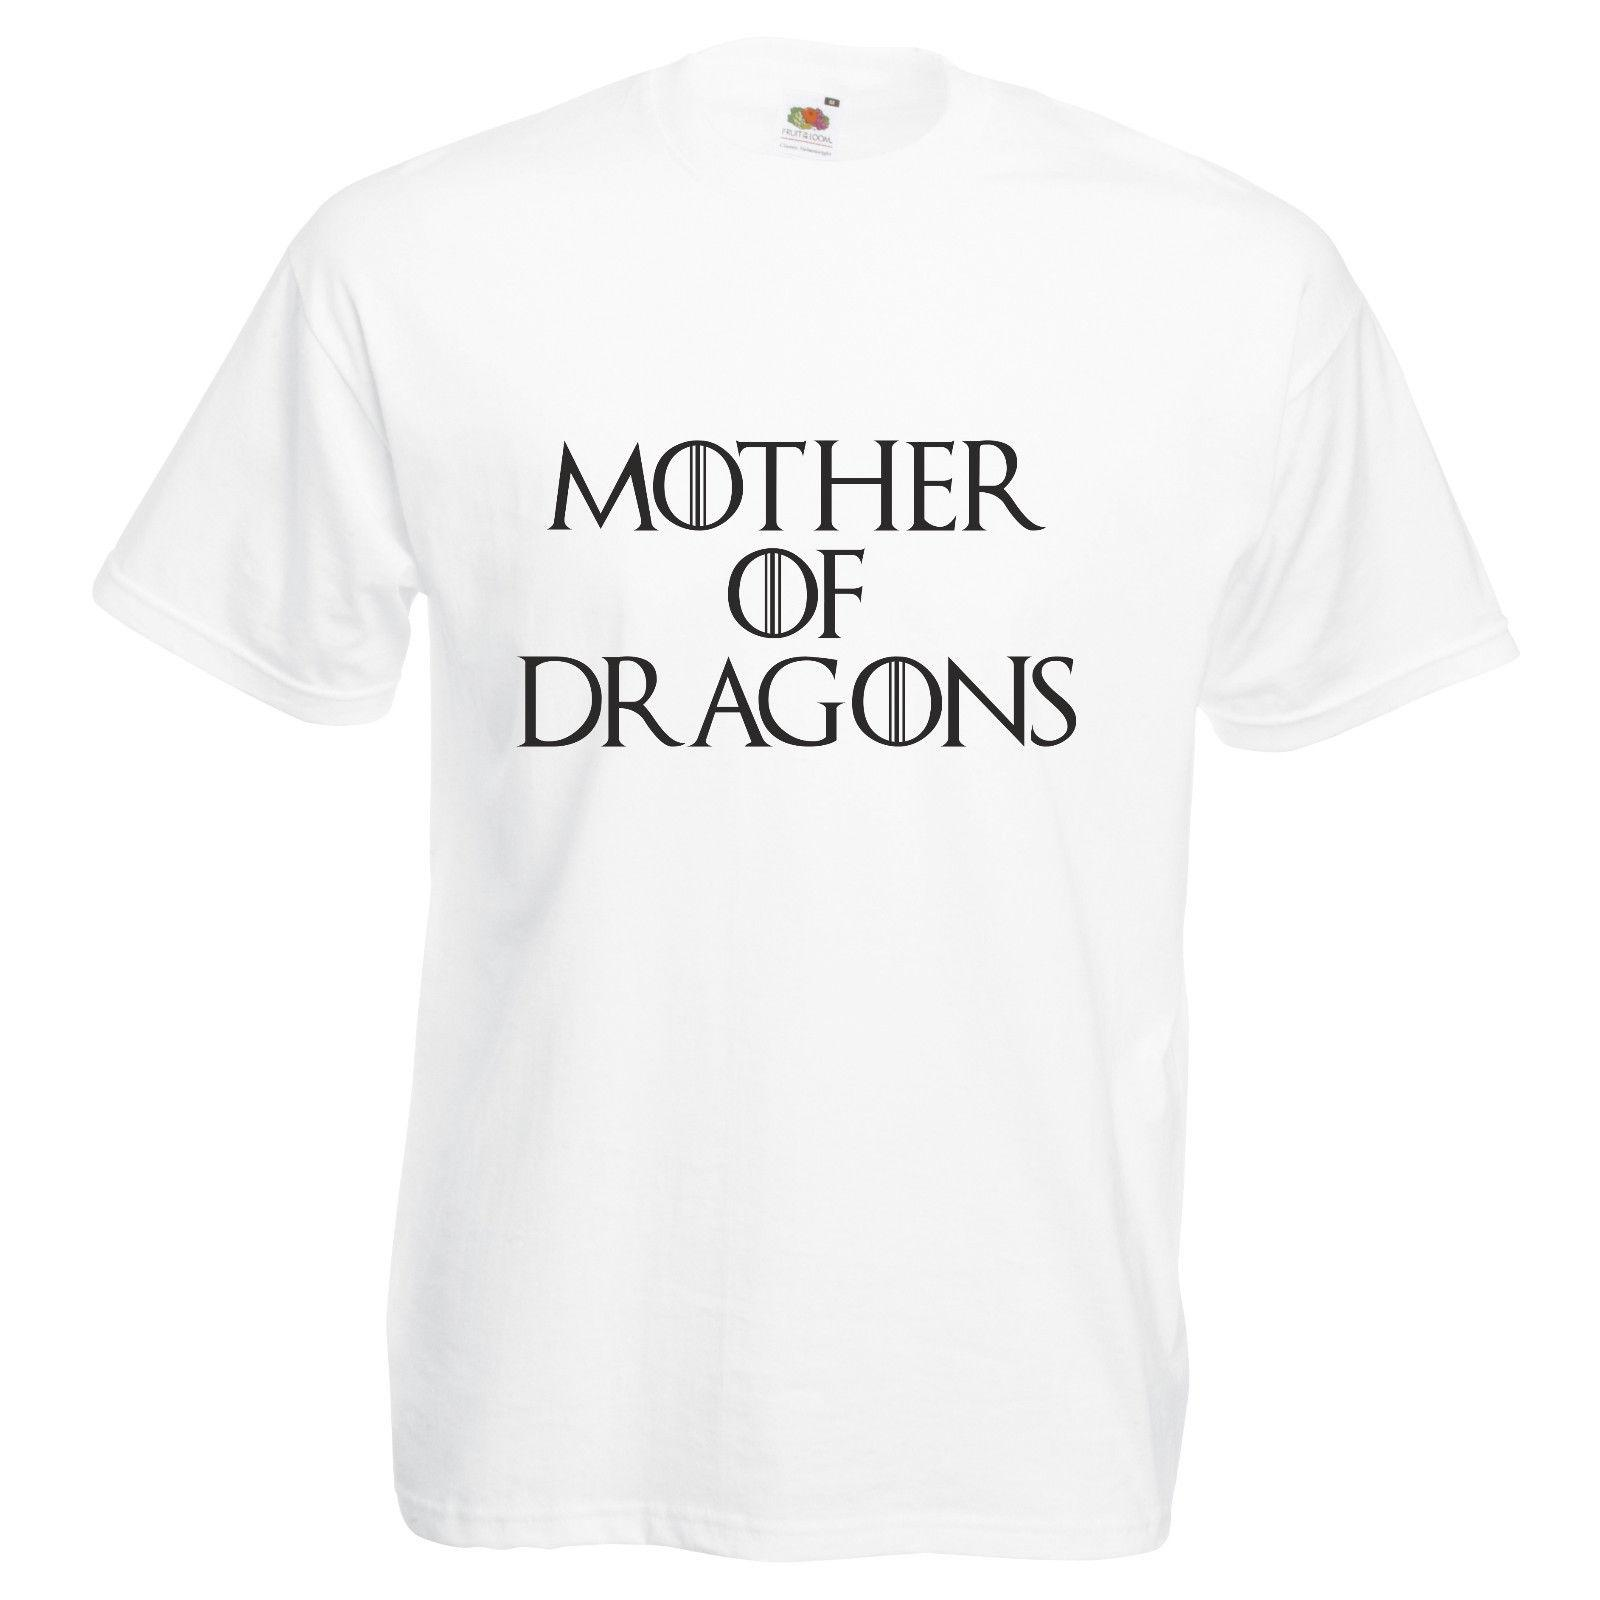 4fd263258 Mother Of Dragons Game Of Thrones Daenerys Stormborn Targaryen Inspired T  Shirt Tee Shirt For Sale Worlds Funniest T Shirts From Rutmerch, $11.01|  DHgate.